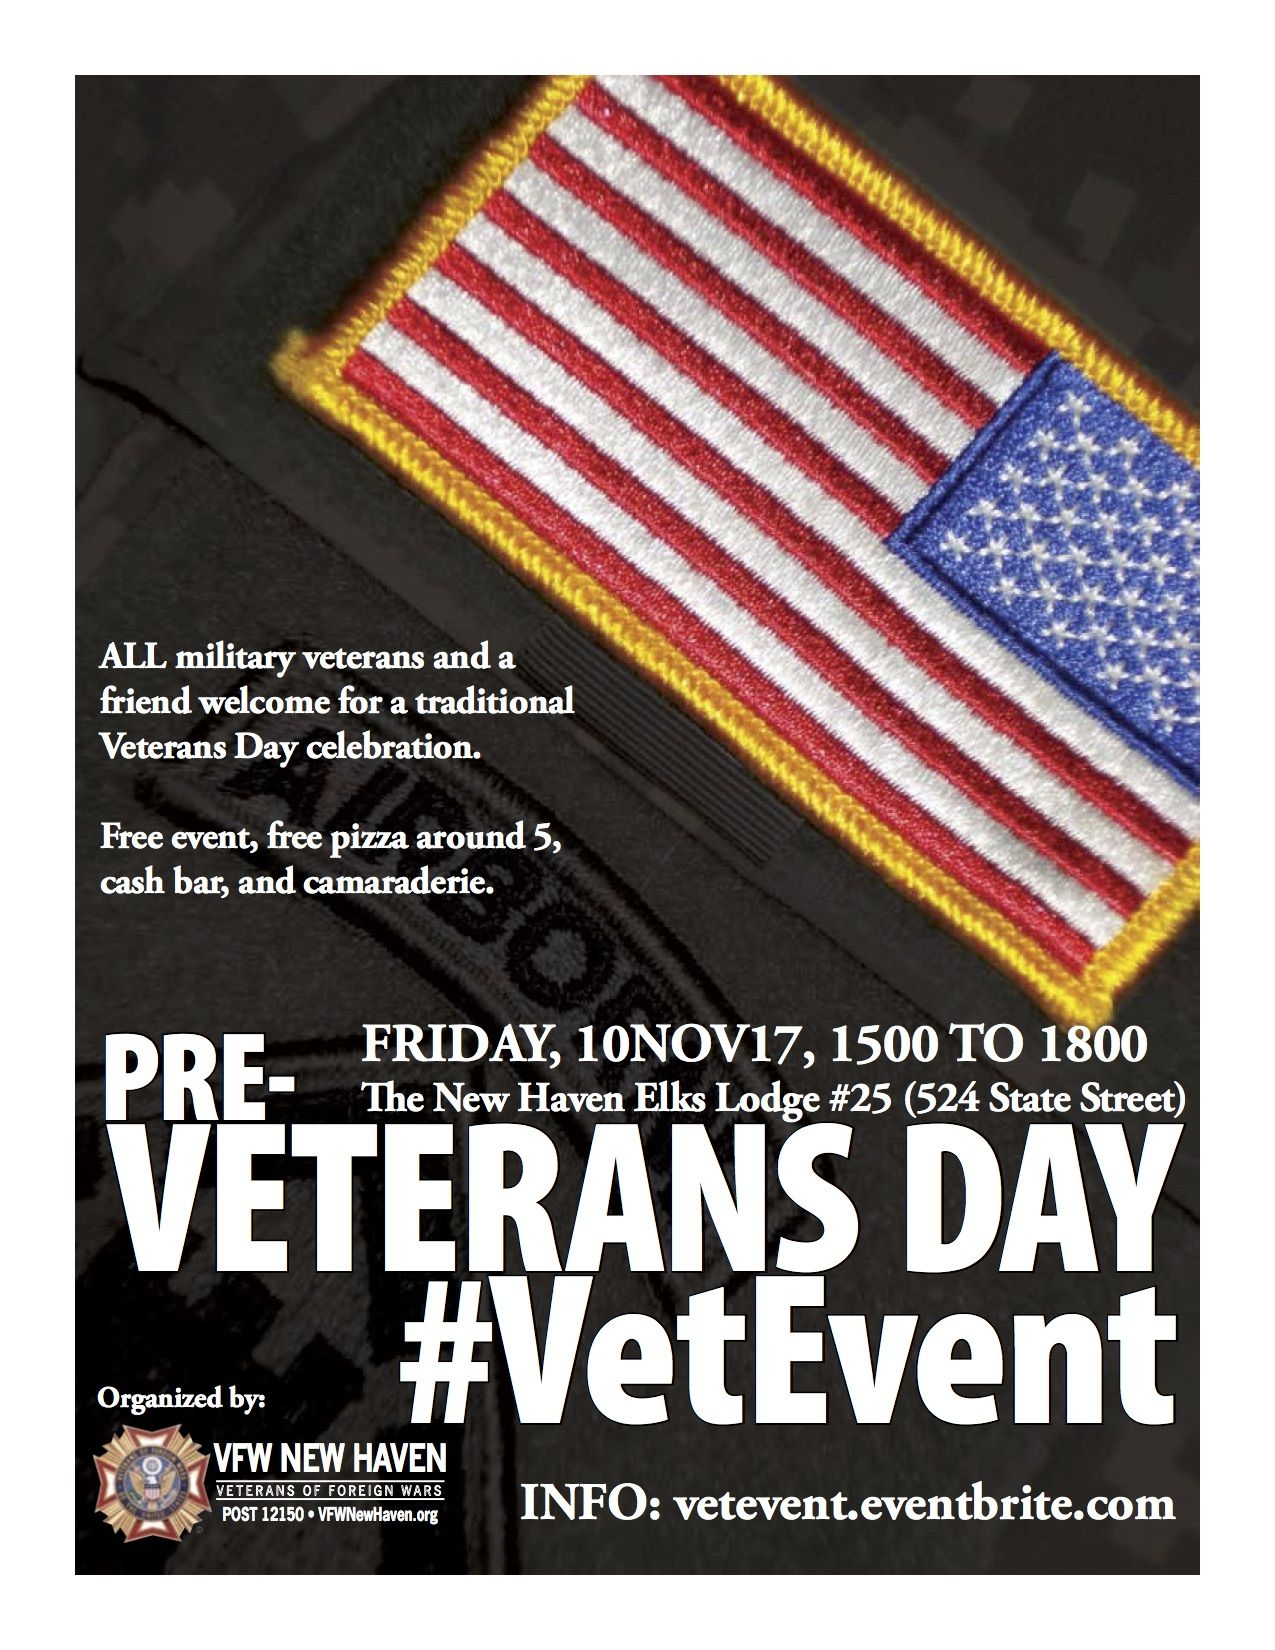 free dinner for veterans| veterans day gift ideas for veterans and